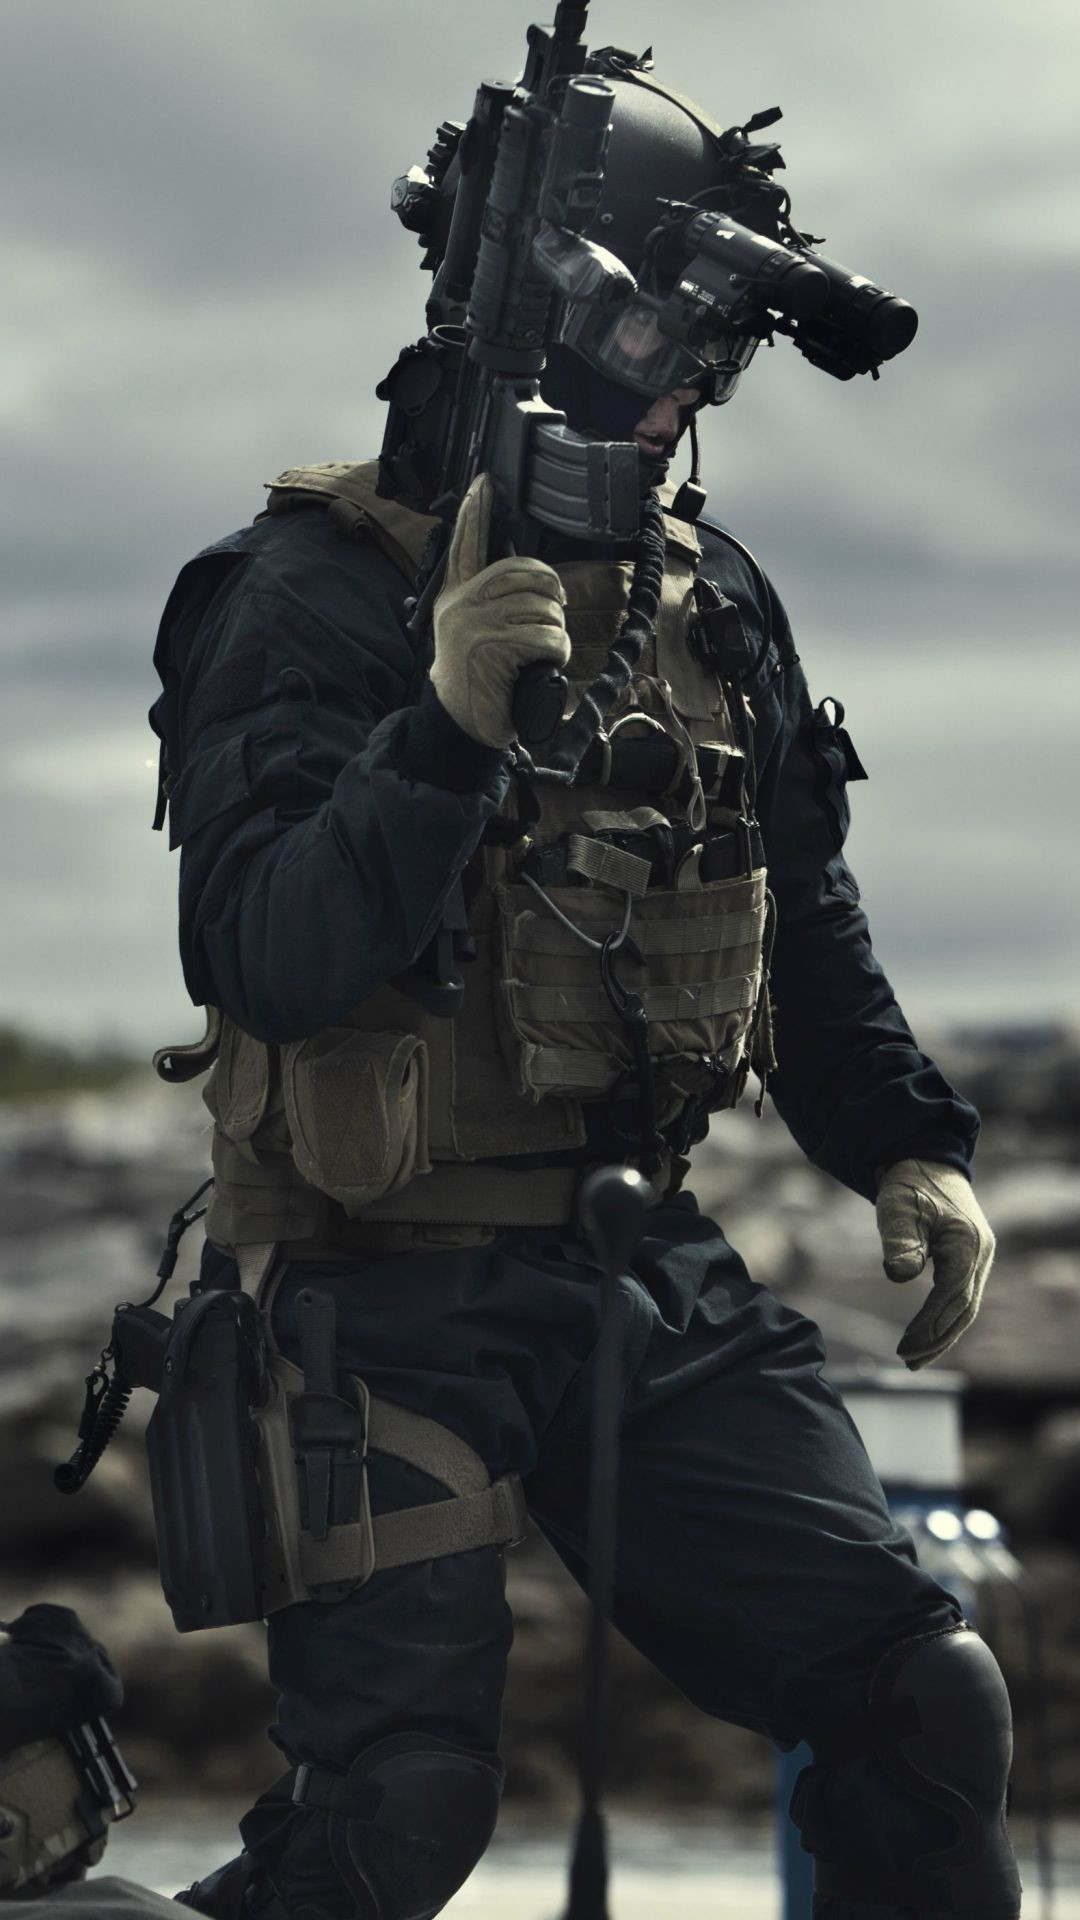 Res: 1080x1920, Military / Soldier () Mobile Wallpaper